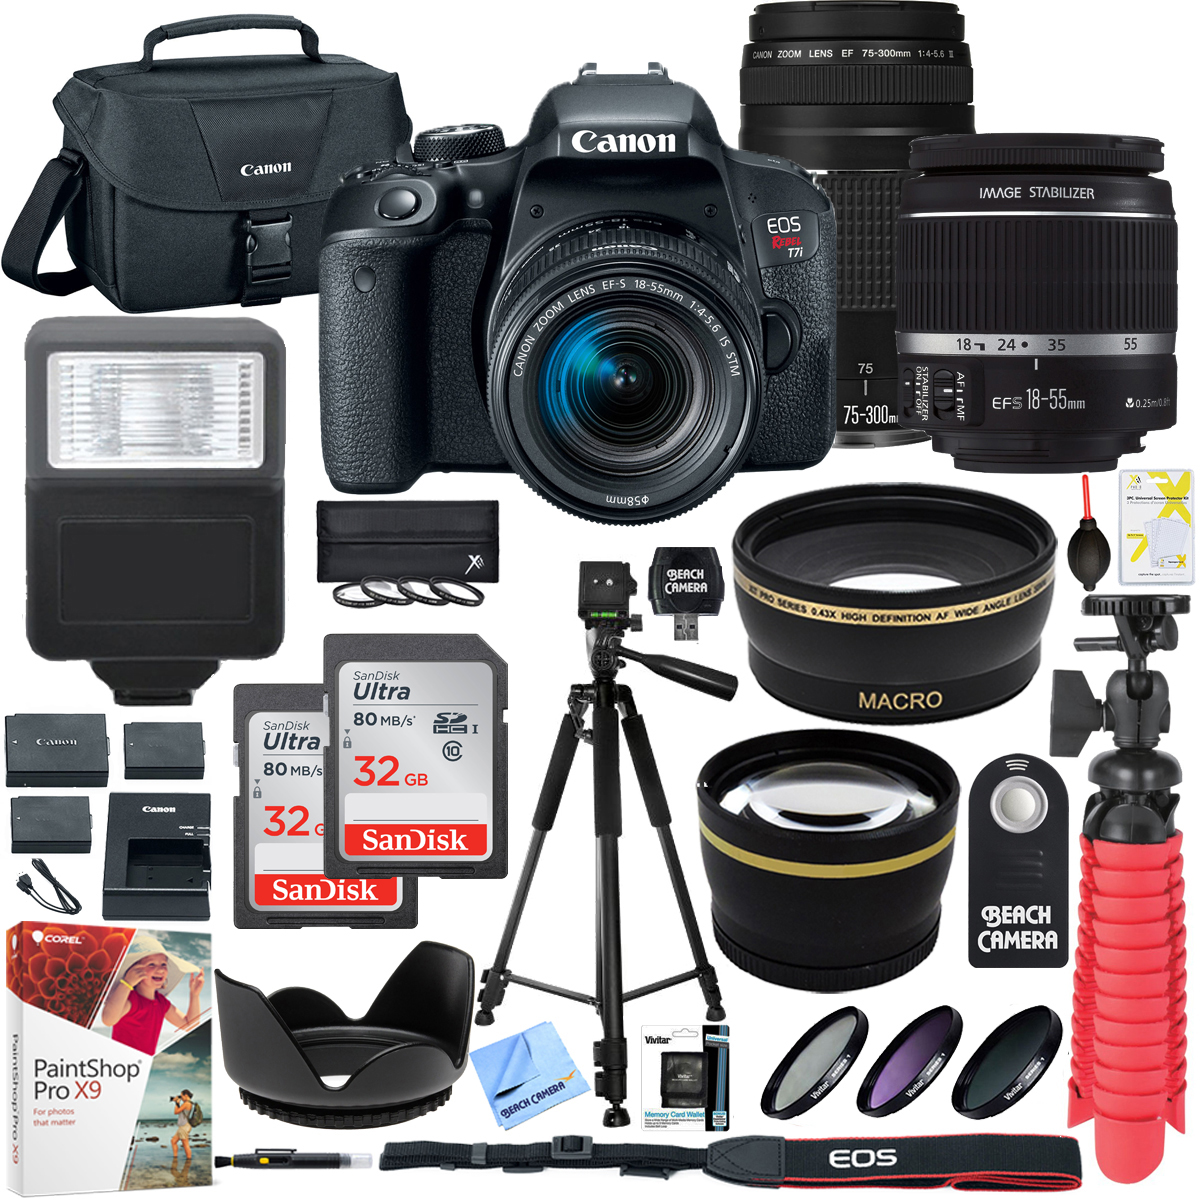 Canon EOS Rebel T7i DSLR Camera with EF-S 18-55mm IS STM & 75-300mm Lens + 2x 32GB Ultra SDHC UHS Class 10 Memory Card + Accessory Bundle (2 Lens Kit EF-S 18-55mm & EF 75-300mm)